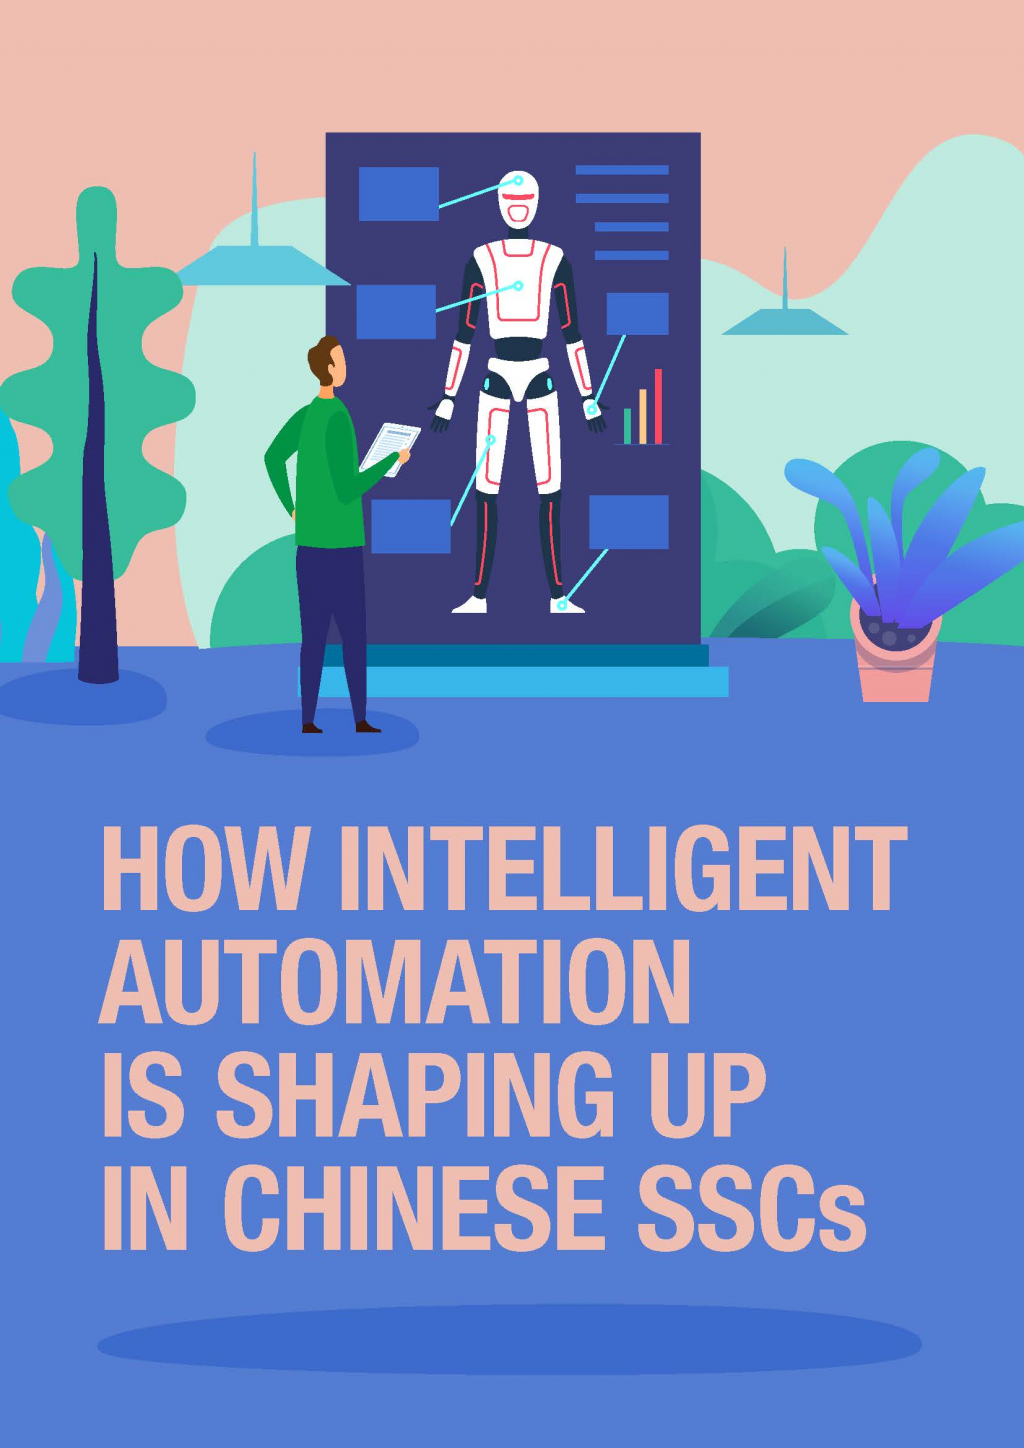 Read the Article - How Intelligent Automation Is Shaping Up In Chinese SSCs